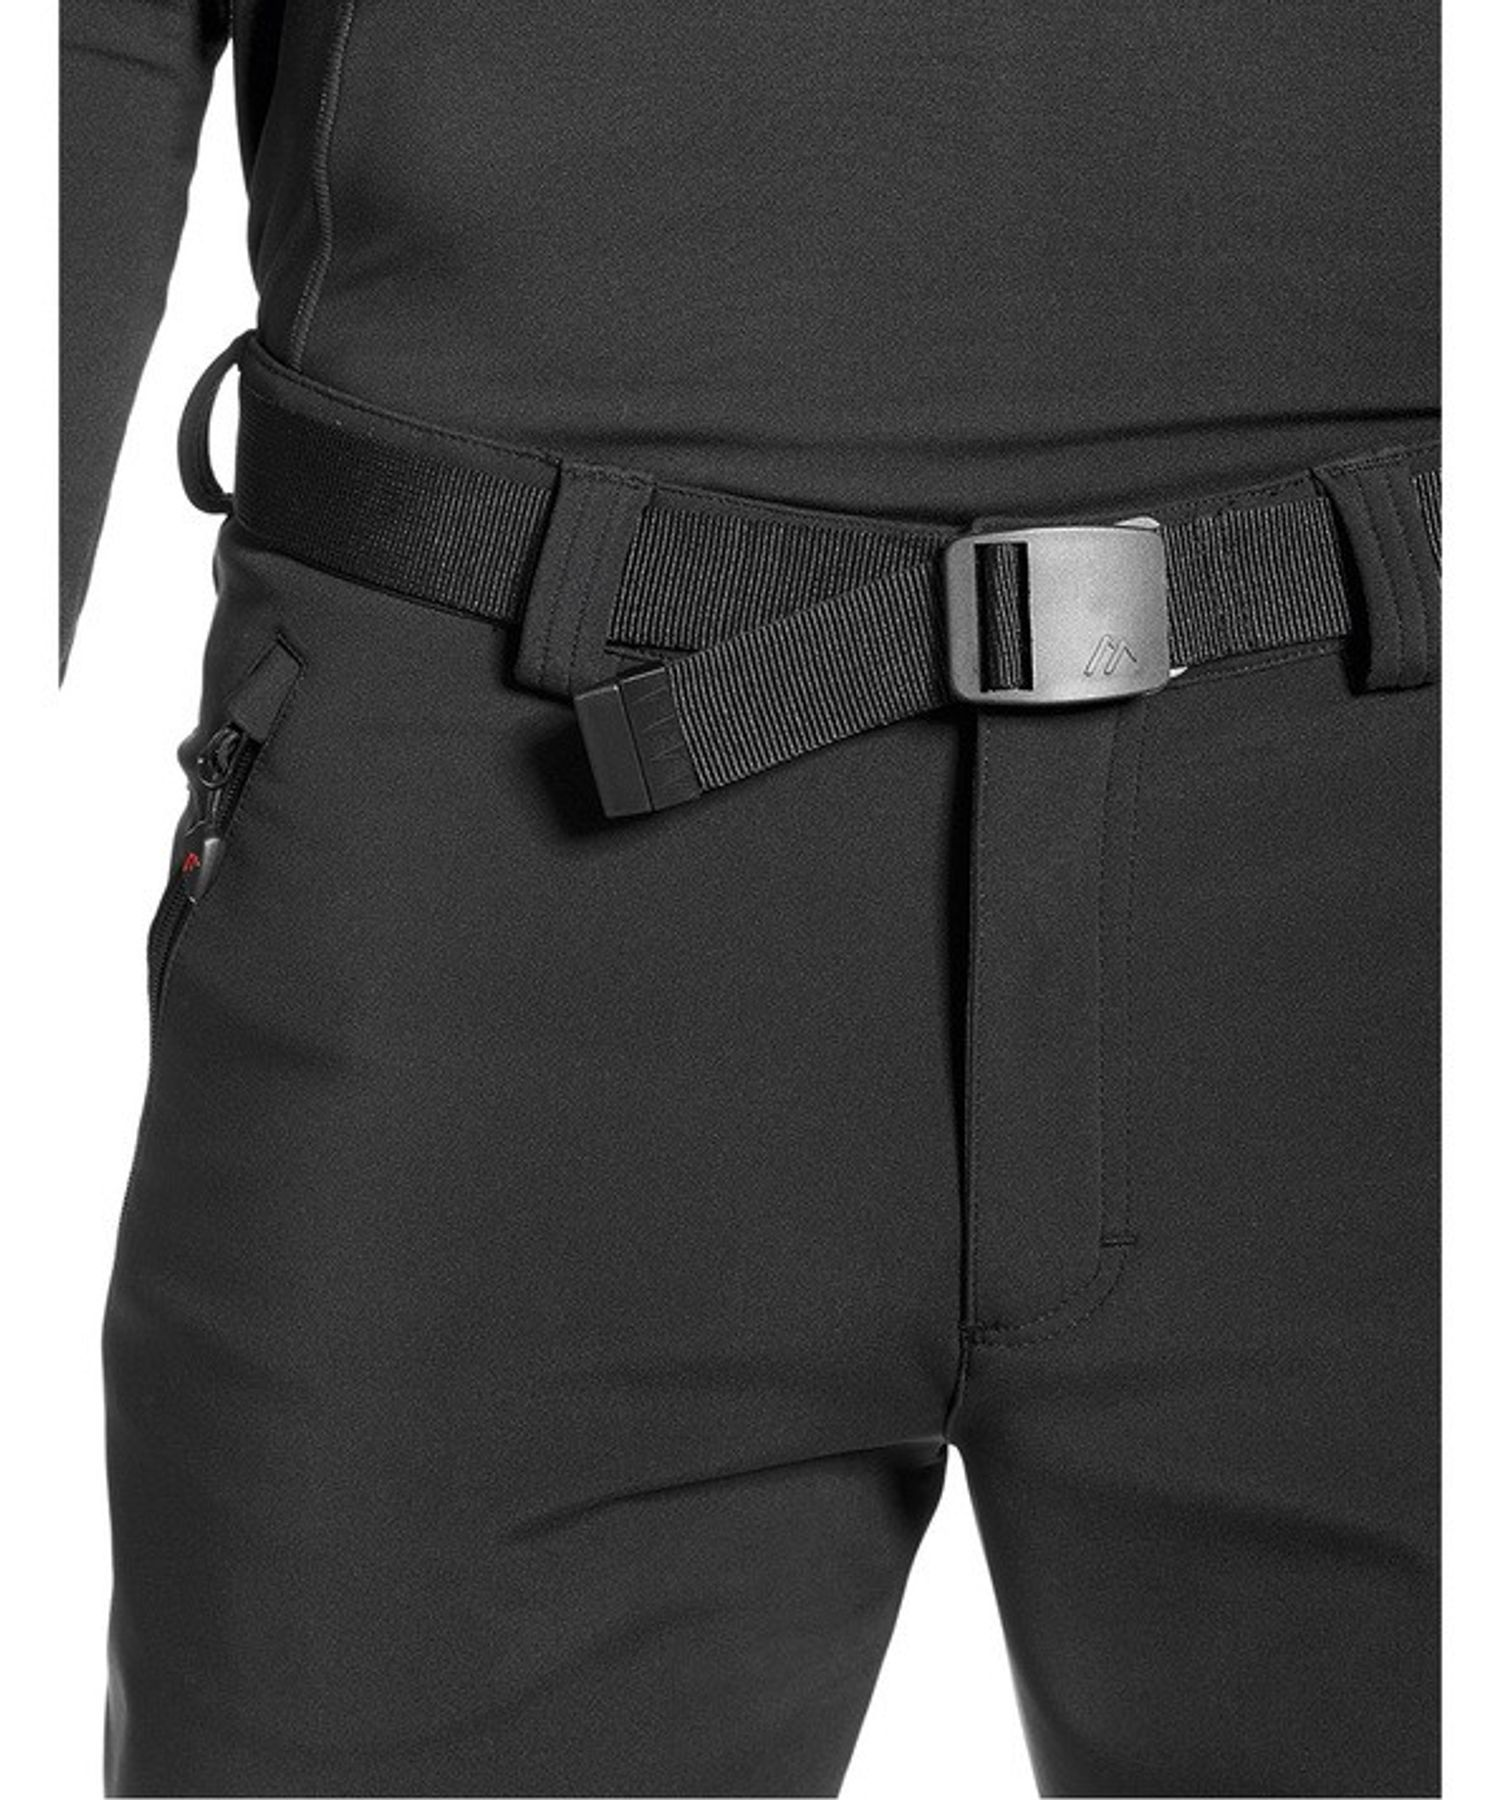 Maier Sports- Herren Funktionelle Softshell Touren - und Wanderhose in Black Artikel Tech Pants M (136008) – Bild 5